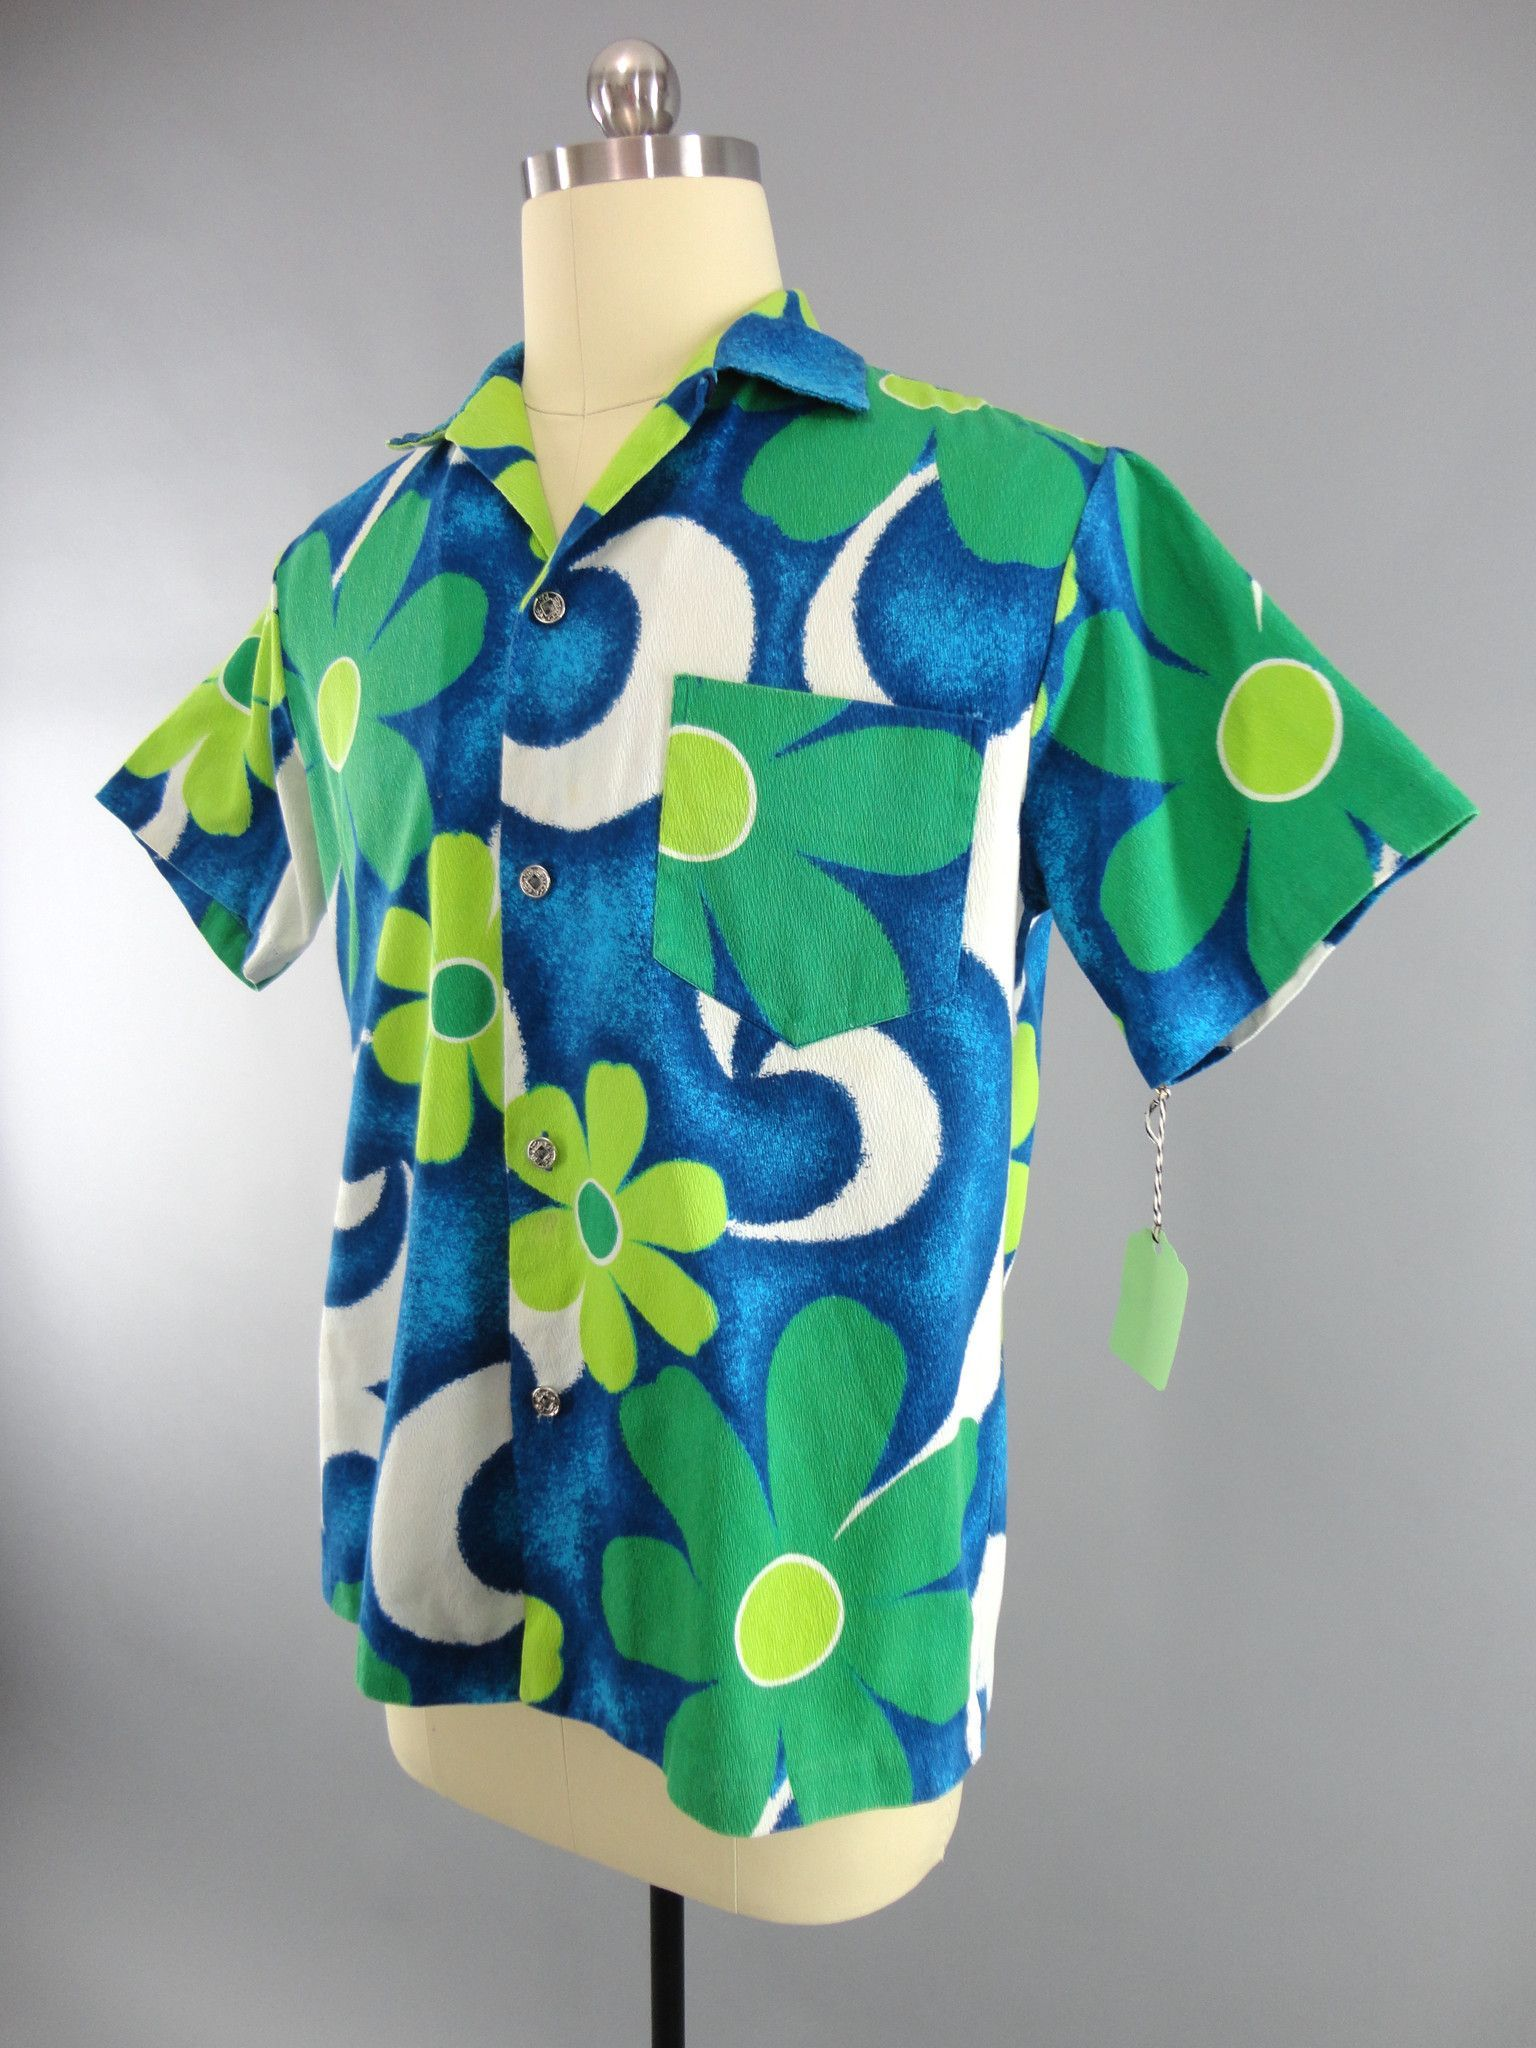 c971e84a Vintage 1960s Aloha Shirt / Royal Hawaiian | Wore it Then - For Men ...